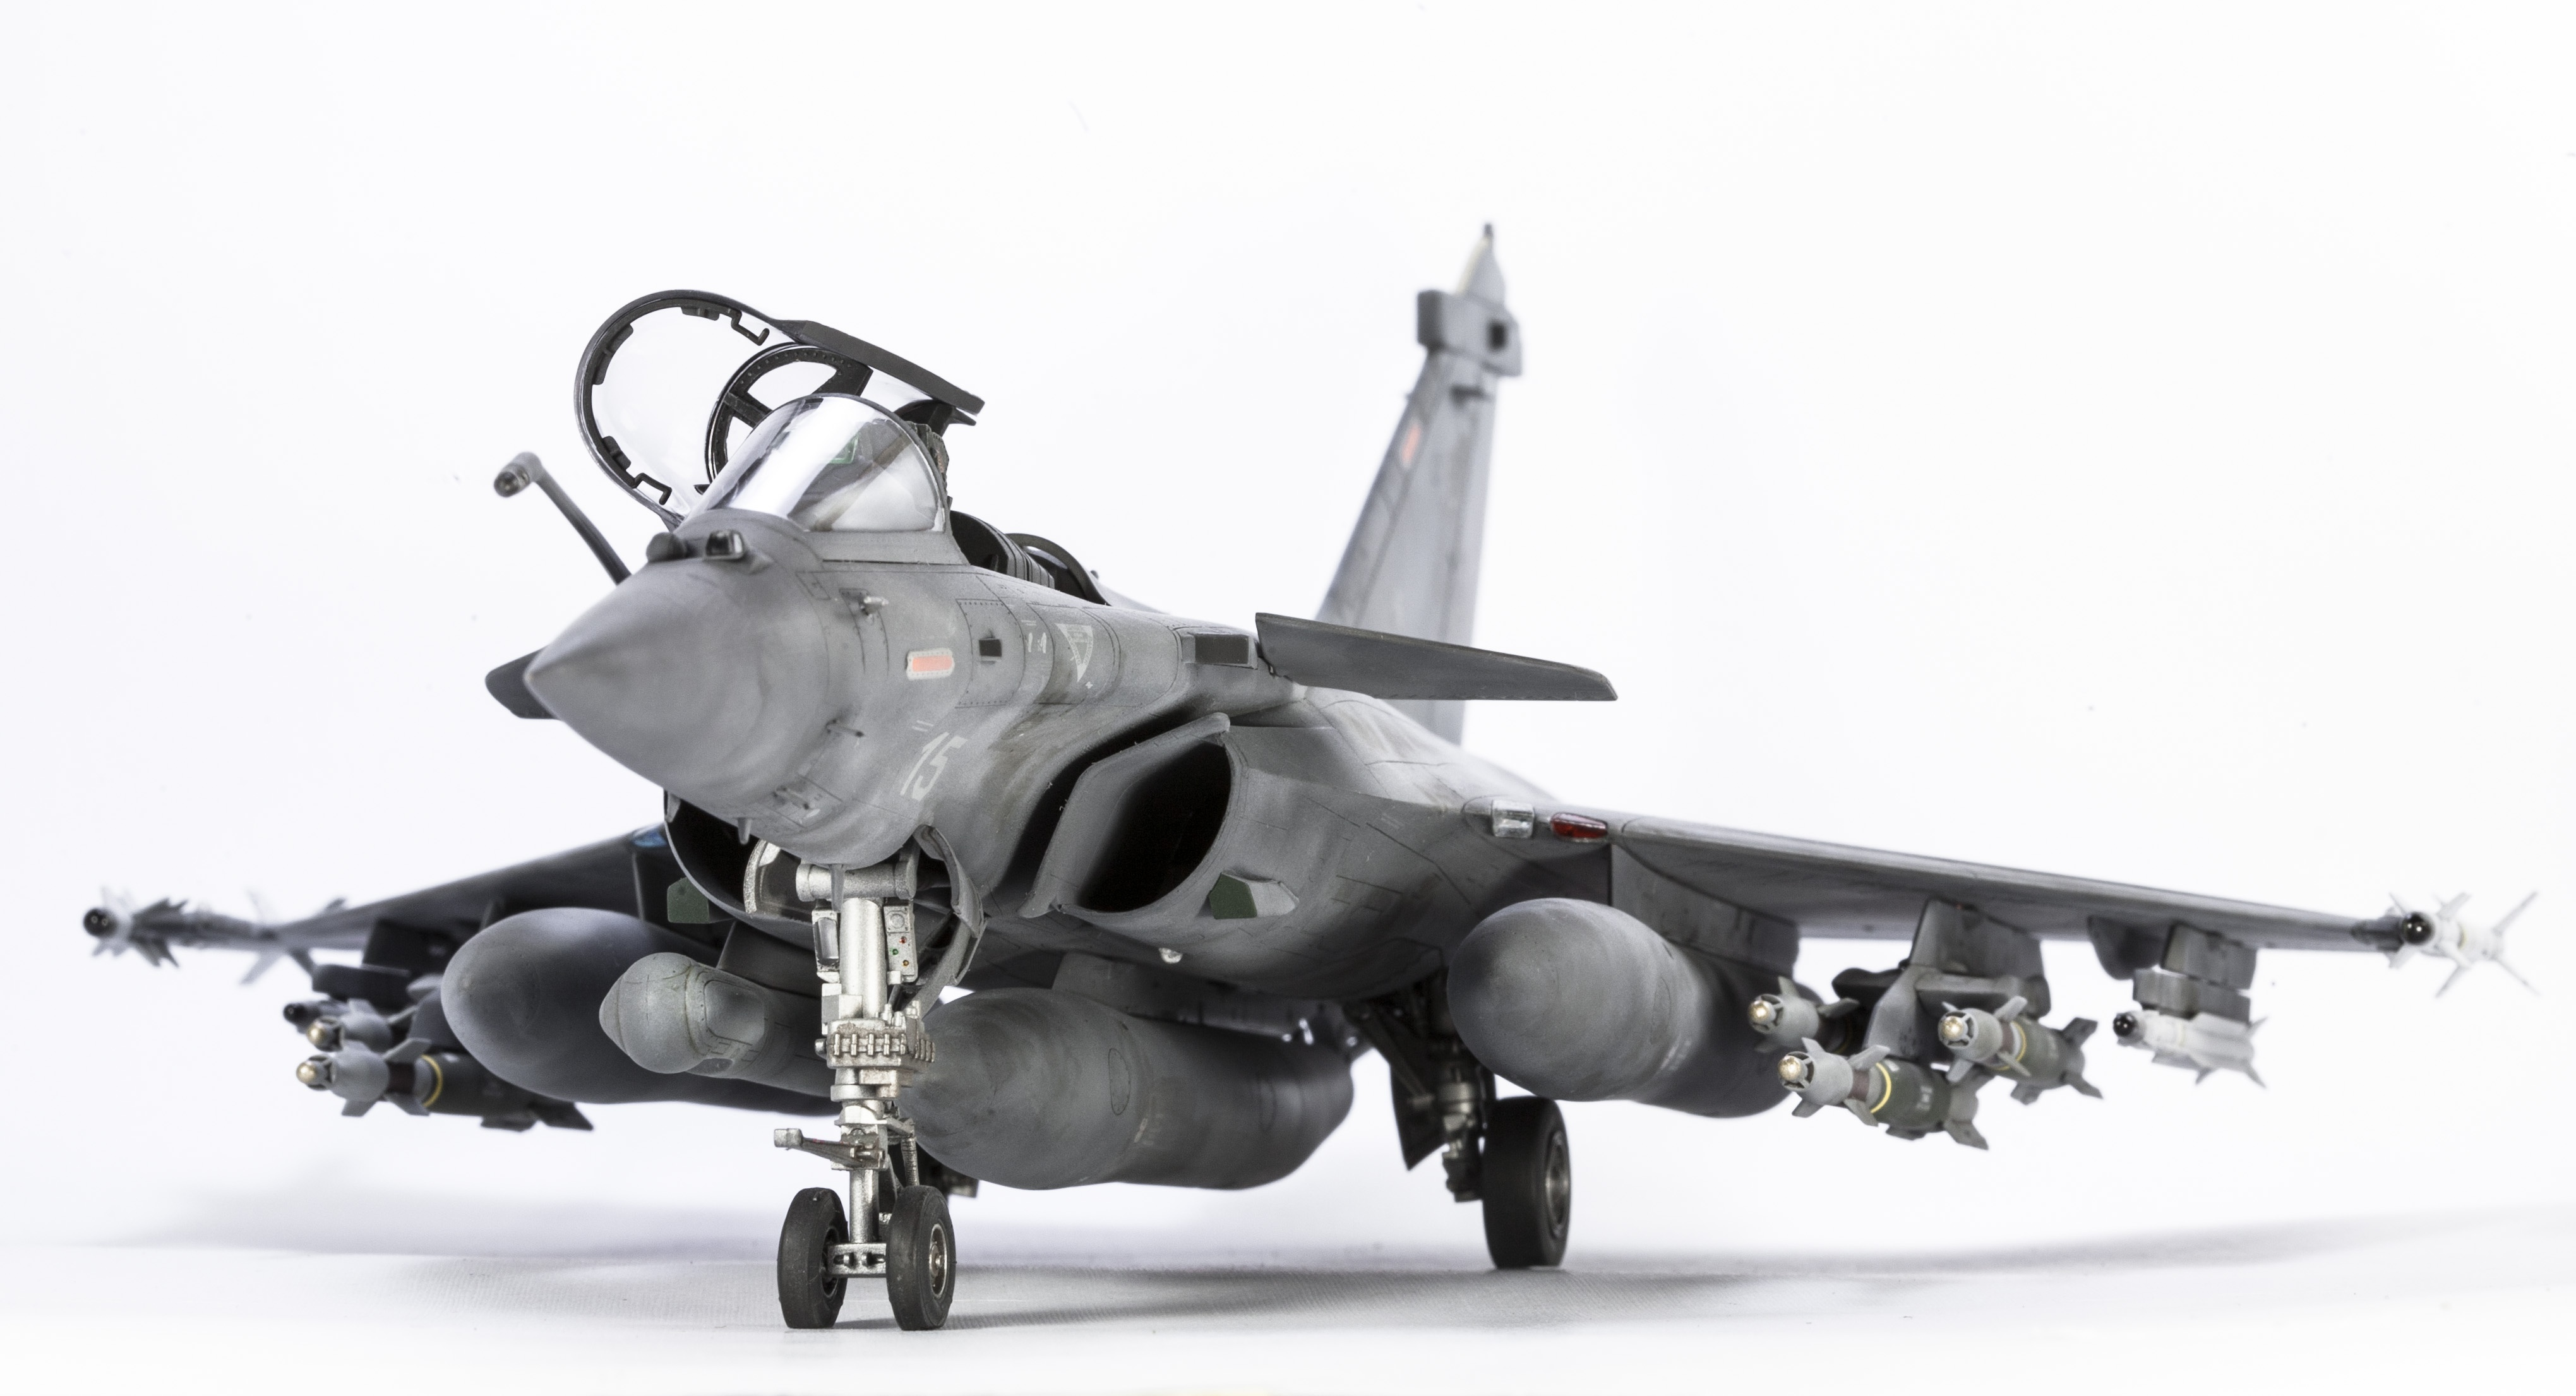 Why Are We In Libya >> Rafale Fighter Hd Wallpaper | www.pixshark.com - Images Galleries With A Bite!